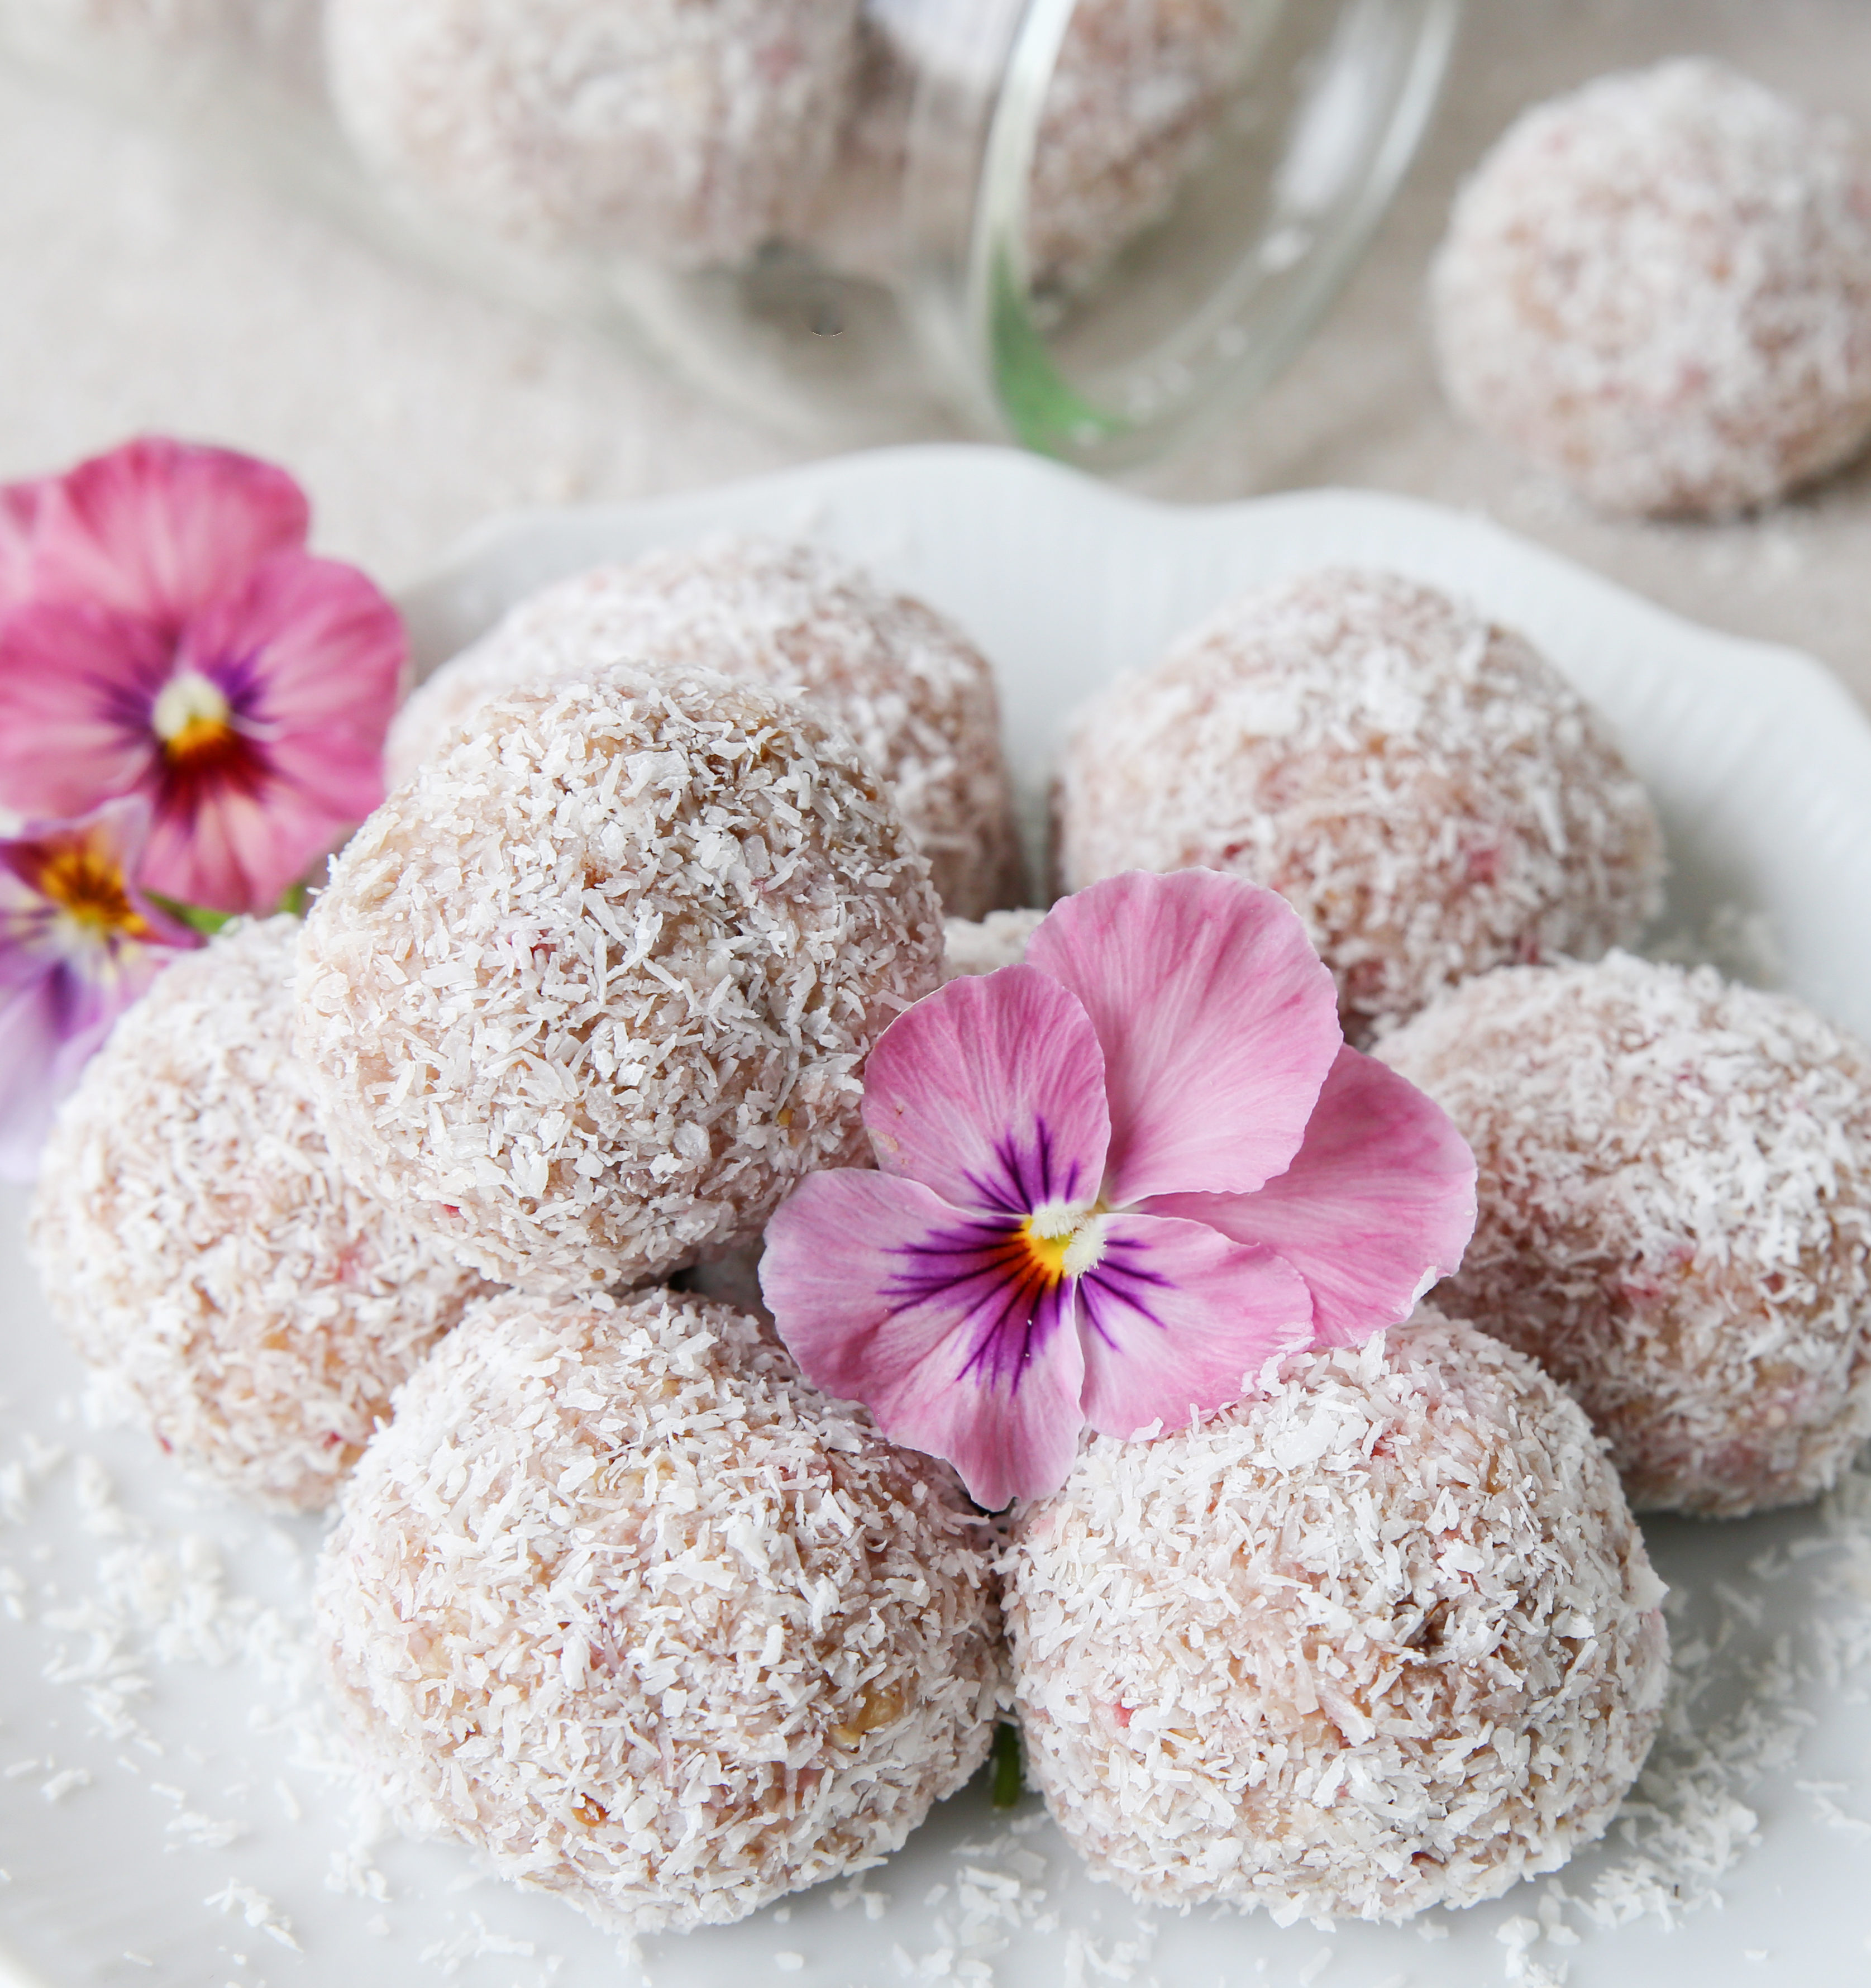 Superfood Nut Butter Bliss Ball Recipe